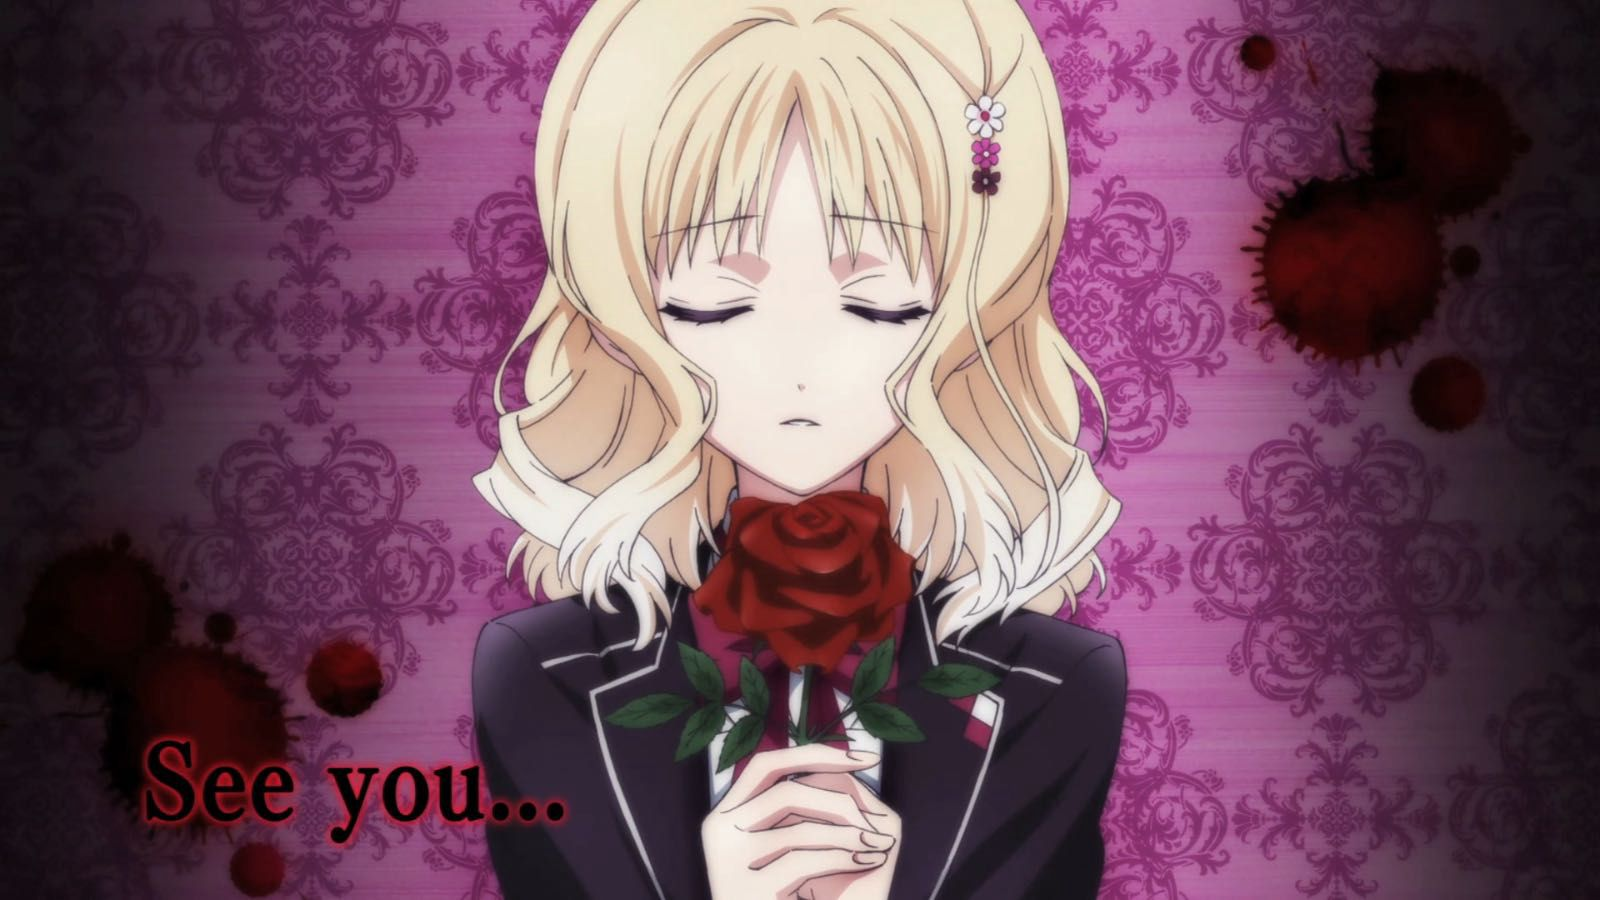 The Other Girl Diabolik Lovers Fanfic Lovey Dovey Cakes